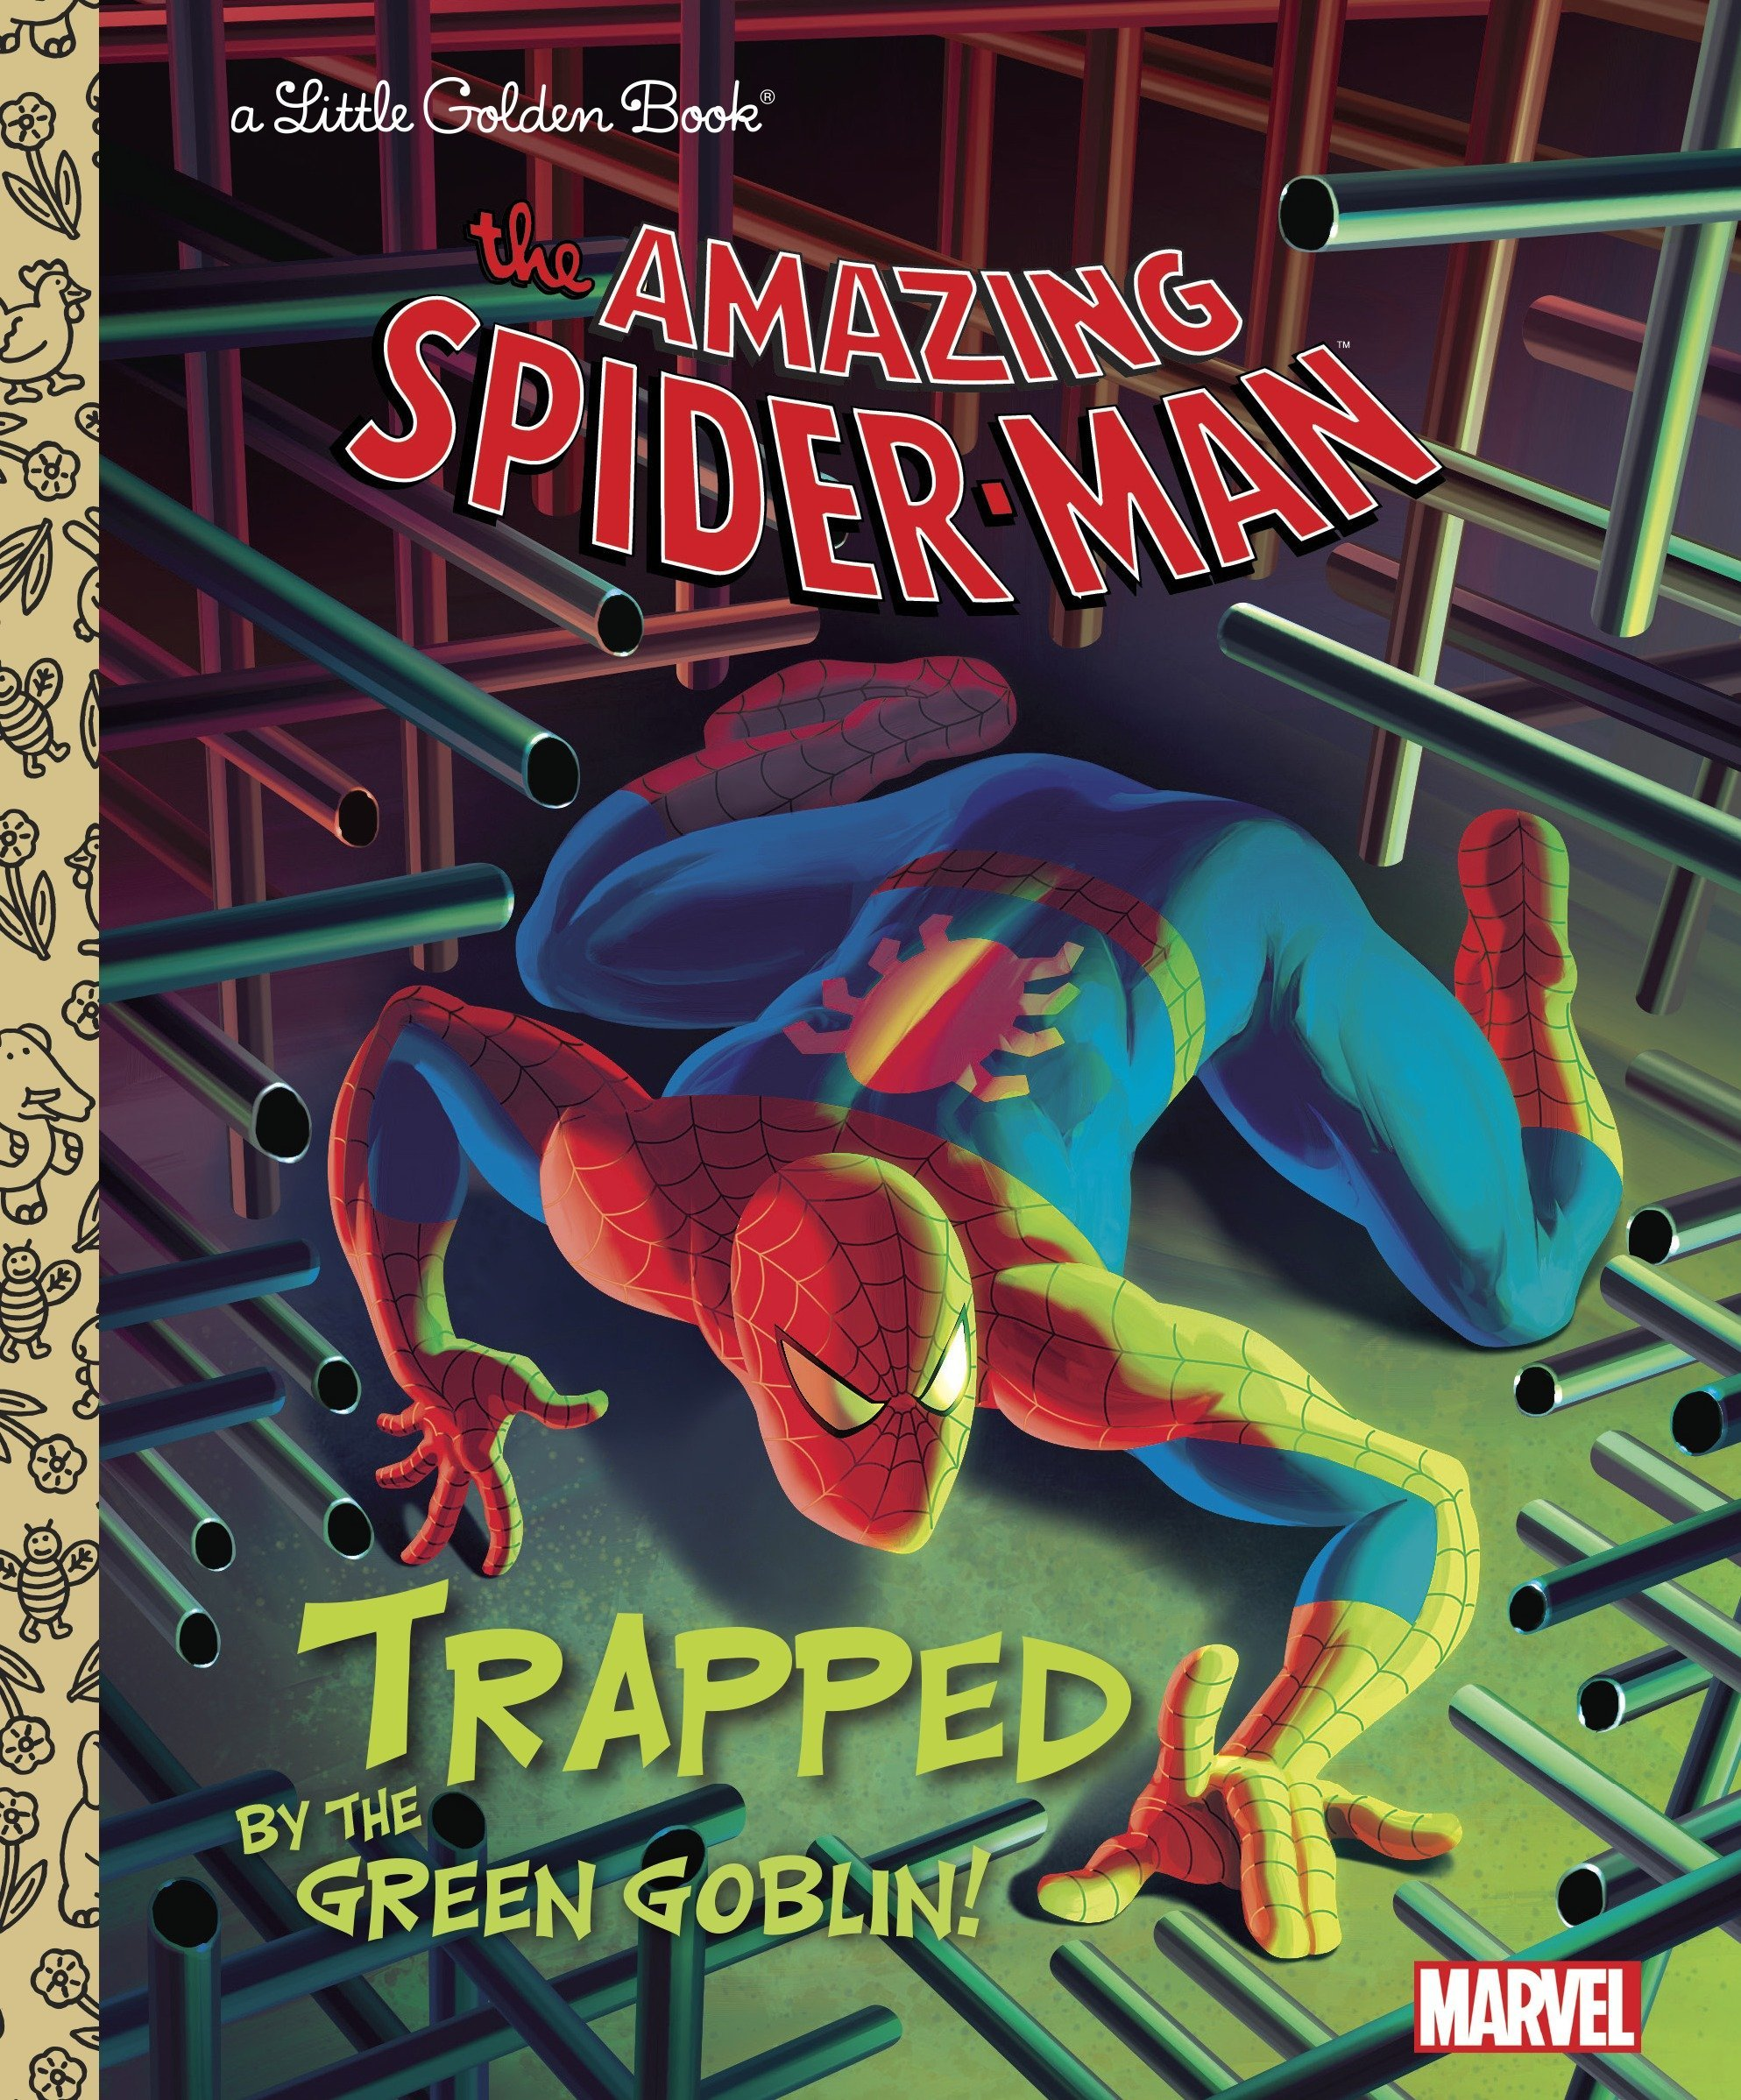 Marvel: Amazing Spider-Man: Trapped by the Green Goblin! (Little Golden Book Series)